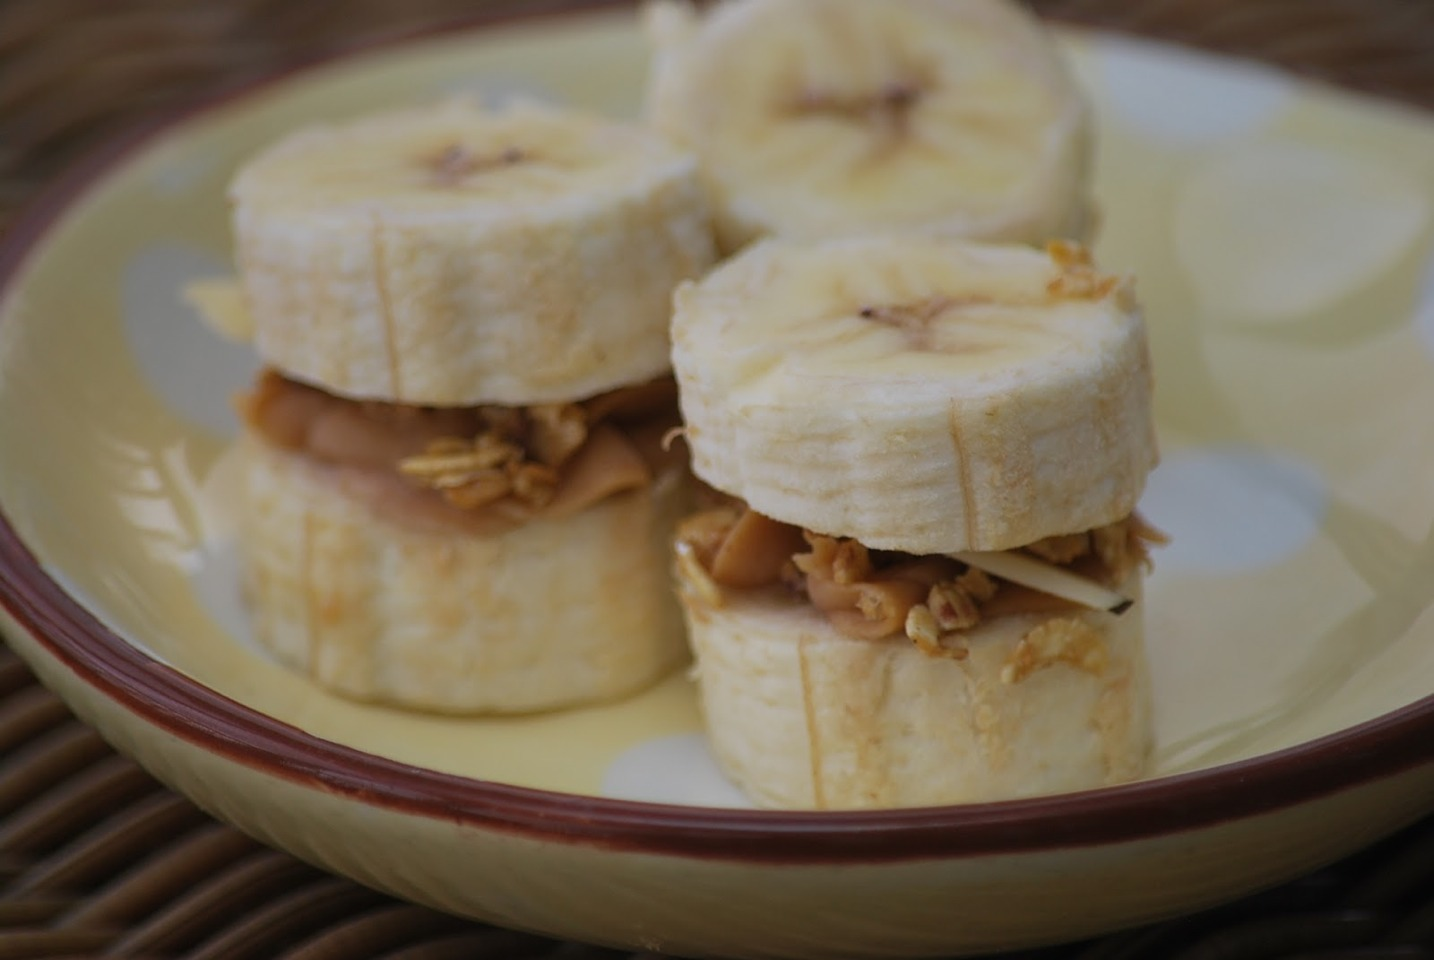 Here is the easiest snack if all that is healthy and delicious!! →→→→→→